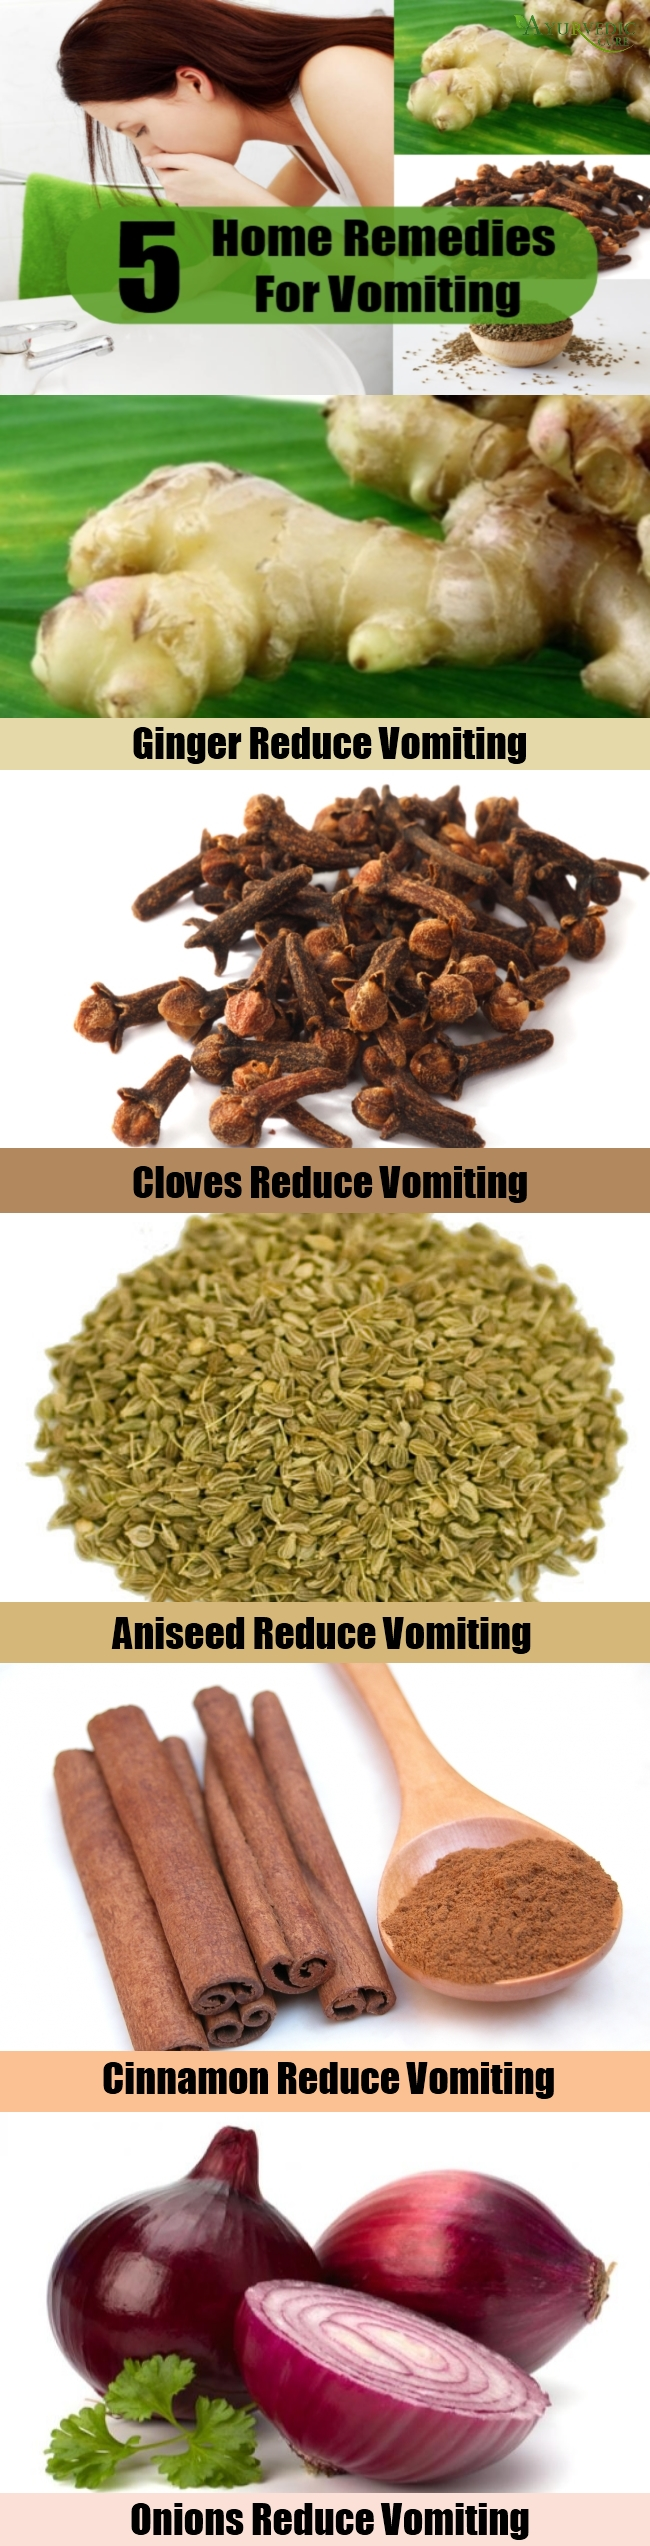 5 Best Home Remedies For Vomiting